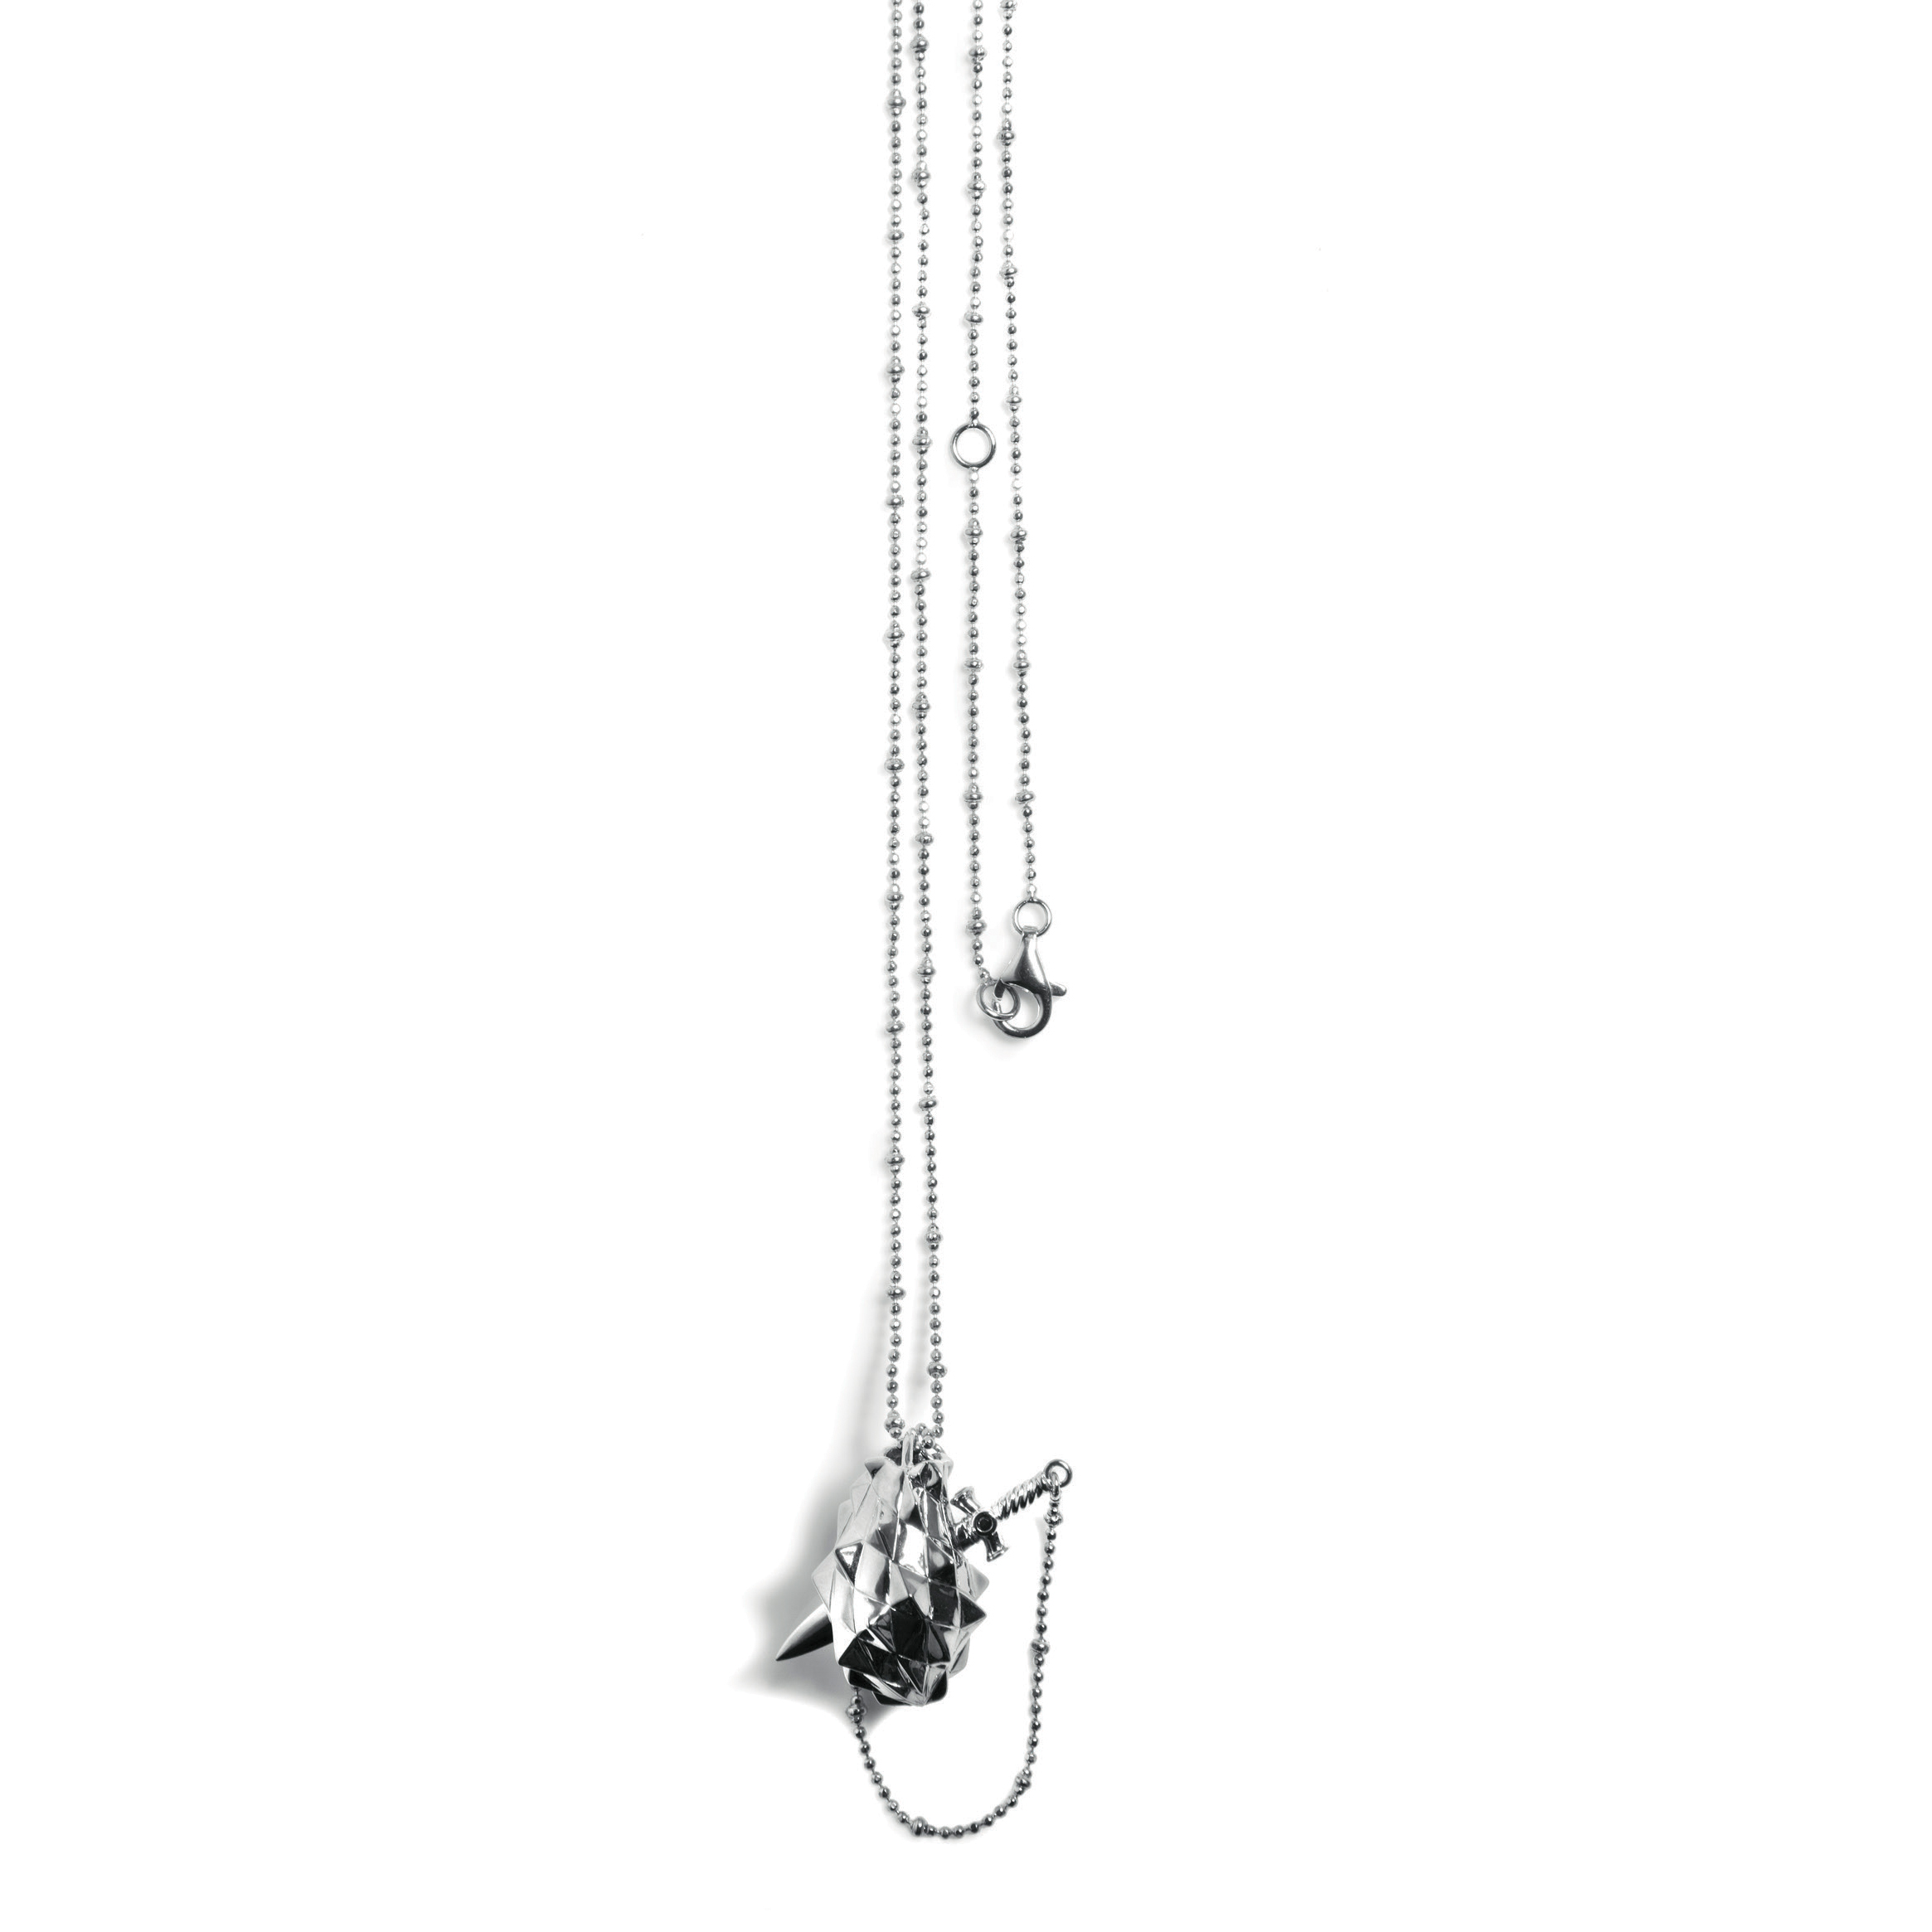 extender steel tone com chain hallmark pendant god love s ip from connections plus two stainless walmart